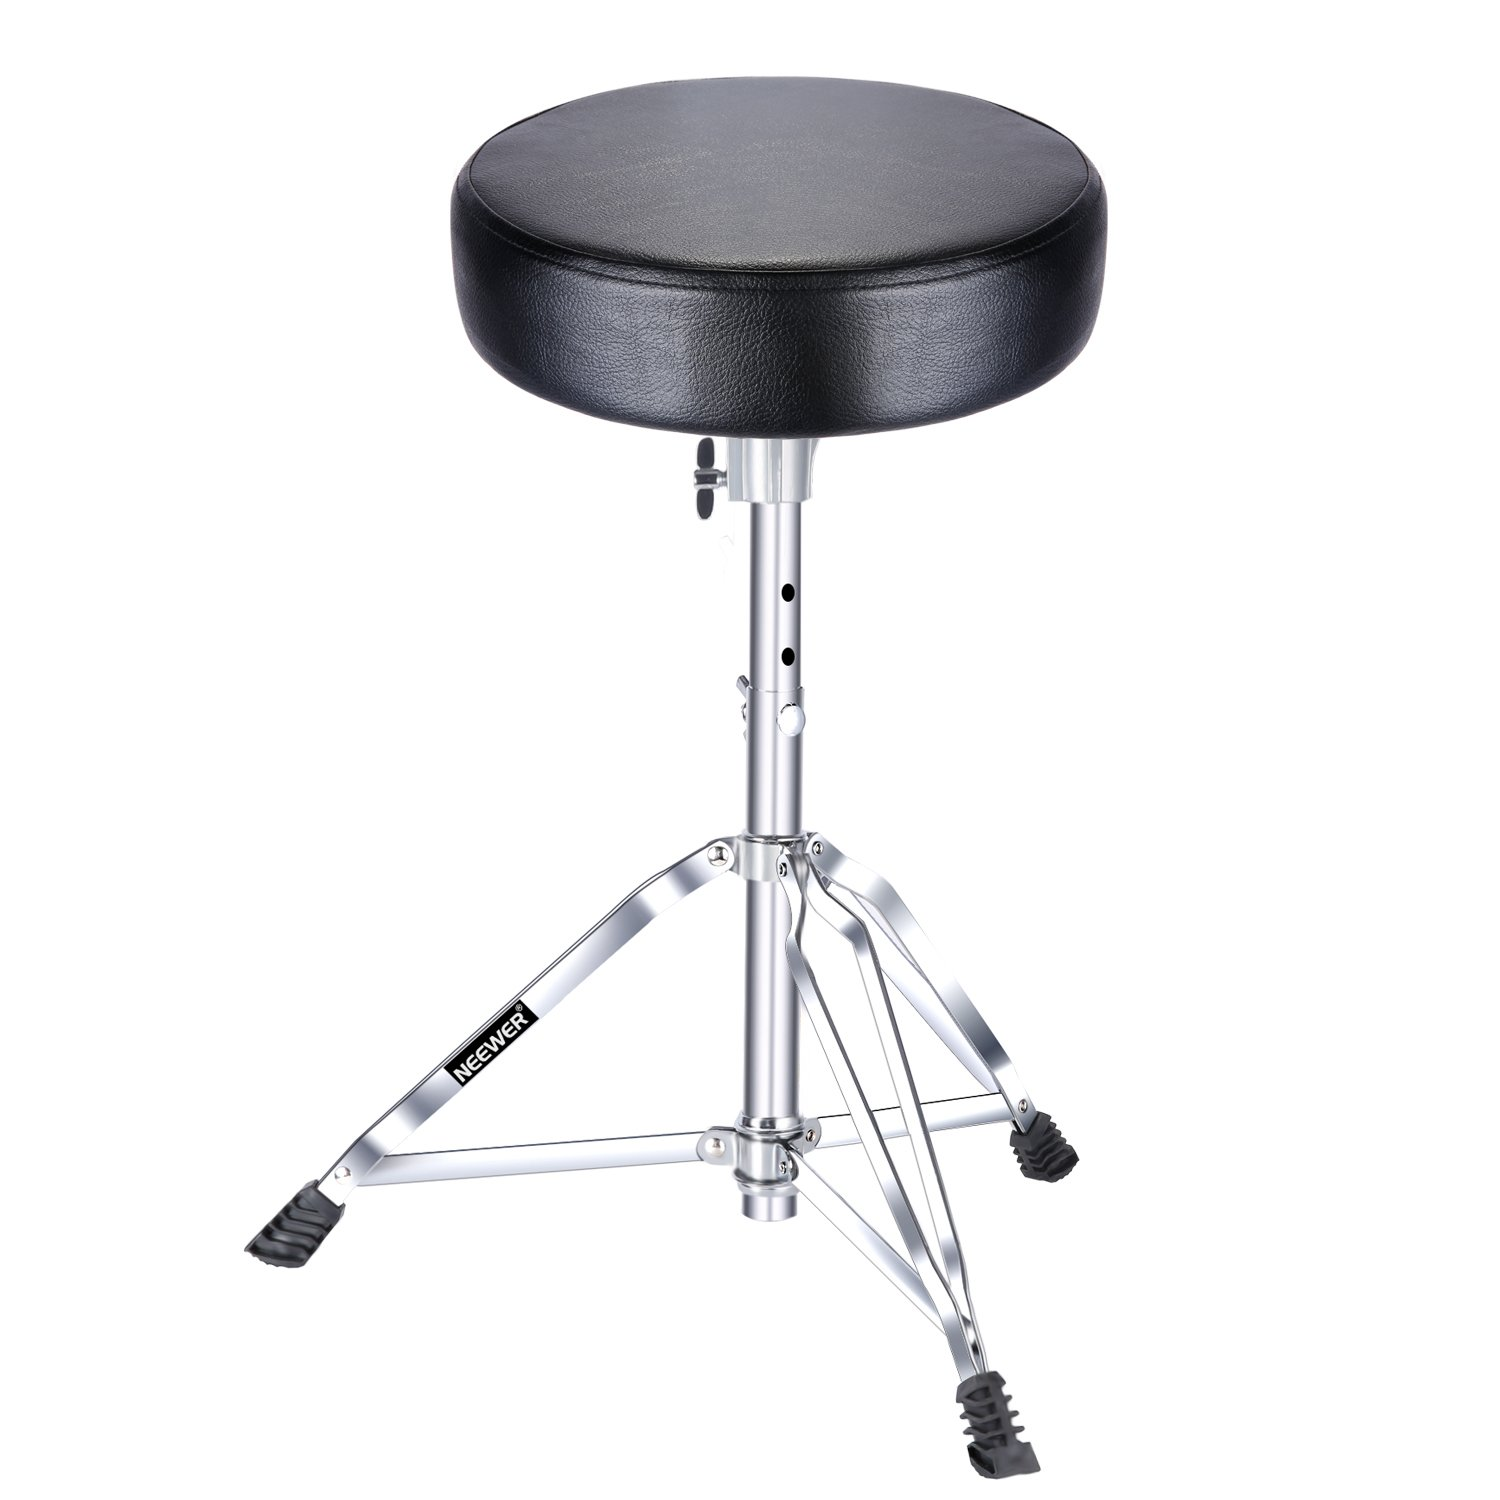 Neewer Stable Drum Throne - 19.3-23.2inches/49-59 centimeters Adjustable Height with Tripod Base, Double Brace Leg, Slip-Proof Rubber Feet, 11.8 -inch Round top, Black (NW-001) 40091098